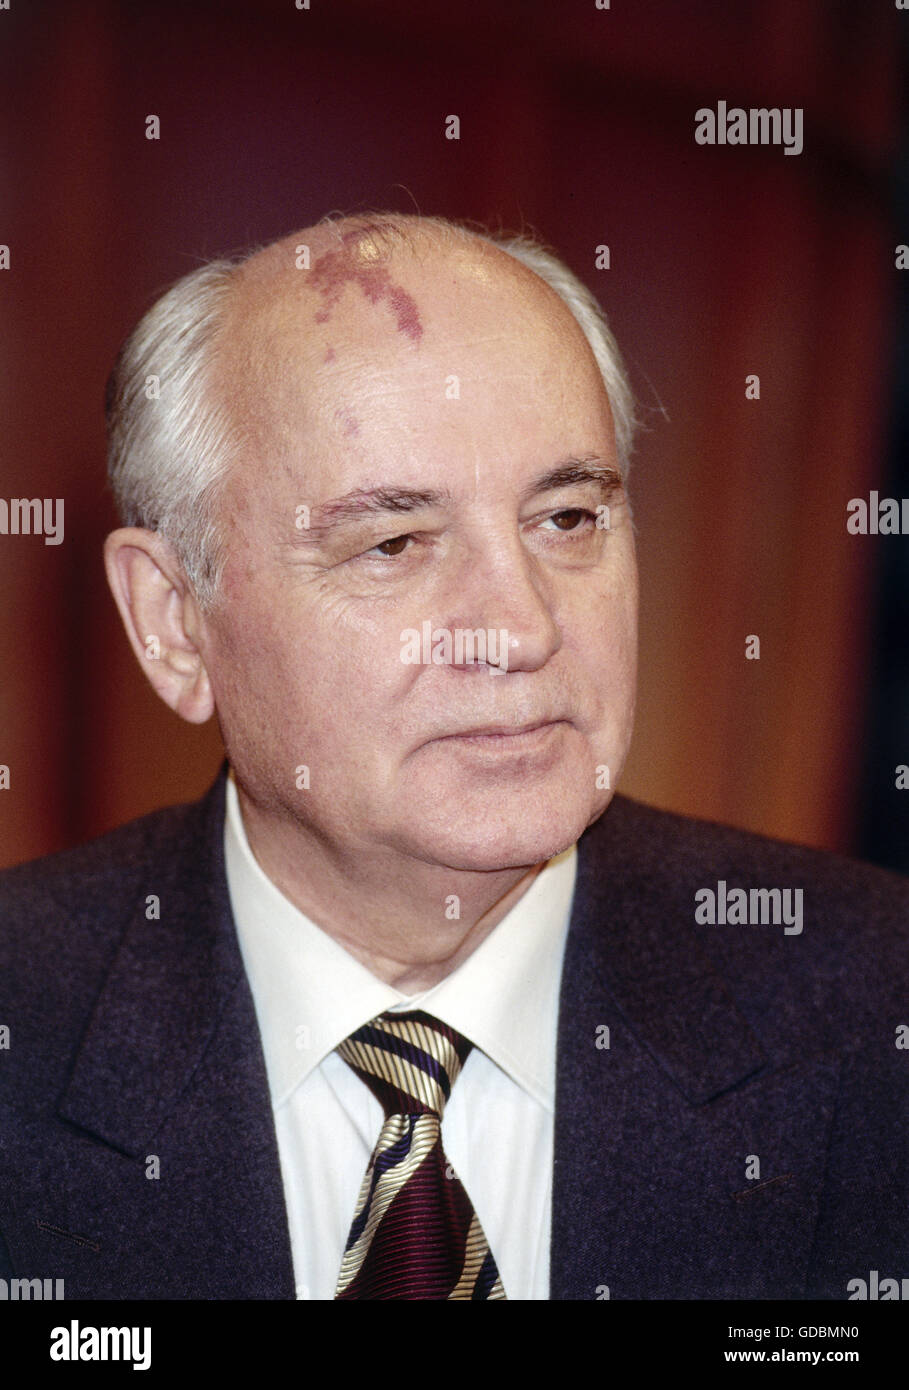 Mikhail Gorbachev, * 2.3.1931, Soviet politician (CPSU), portrait, 1997, Additional-Rights-Clearances-NA - Stock Image